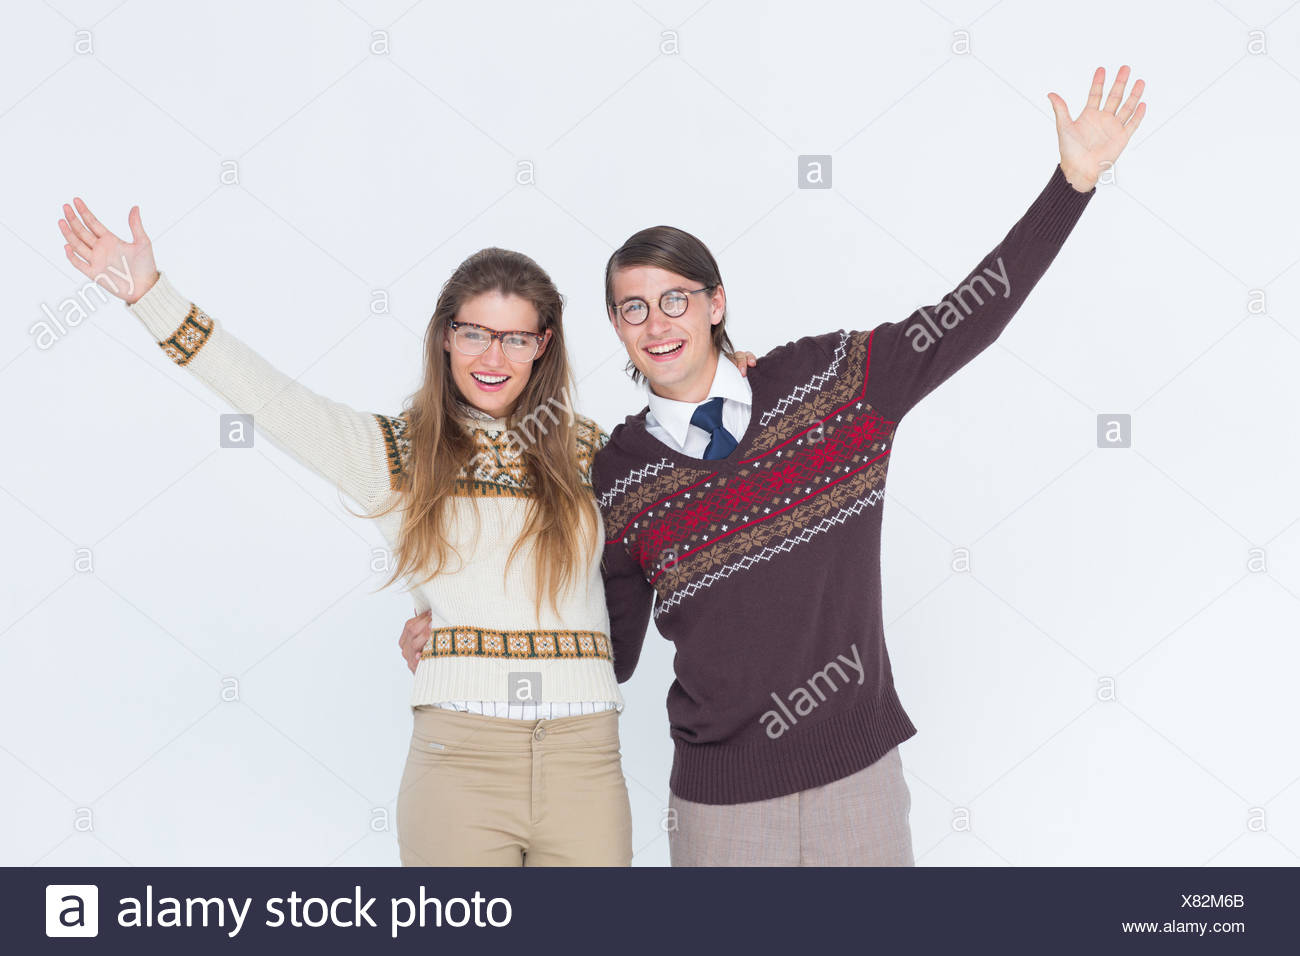 Happy geeky hipster couple embracing - Stock Image